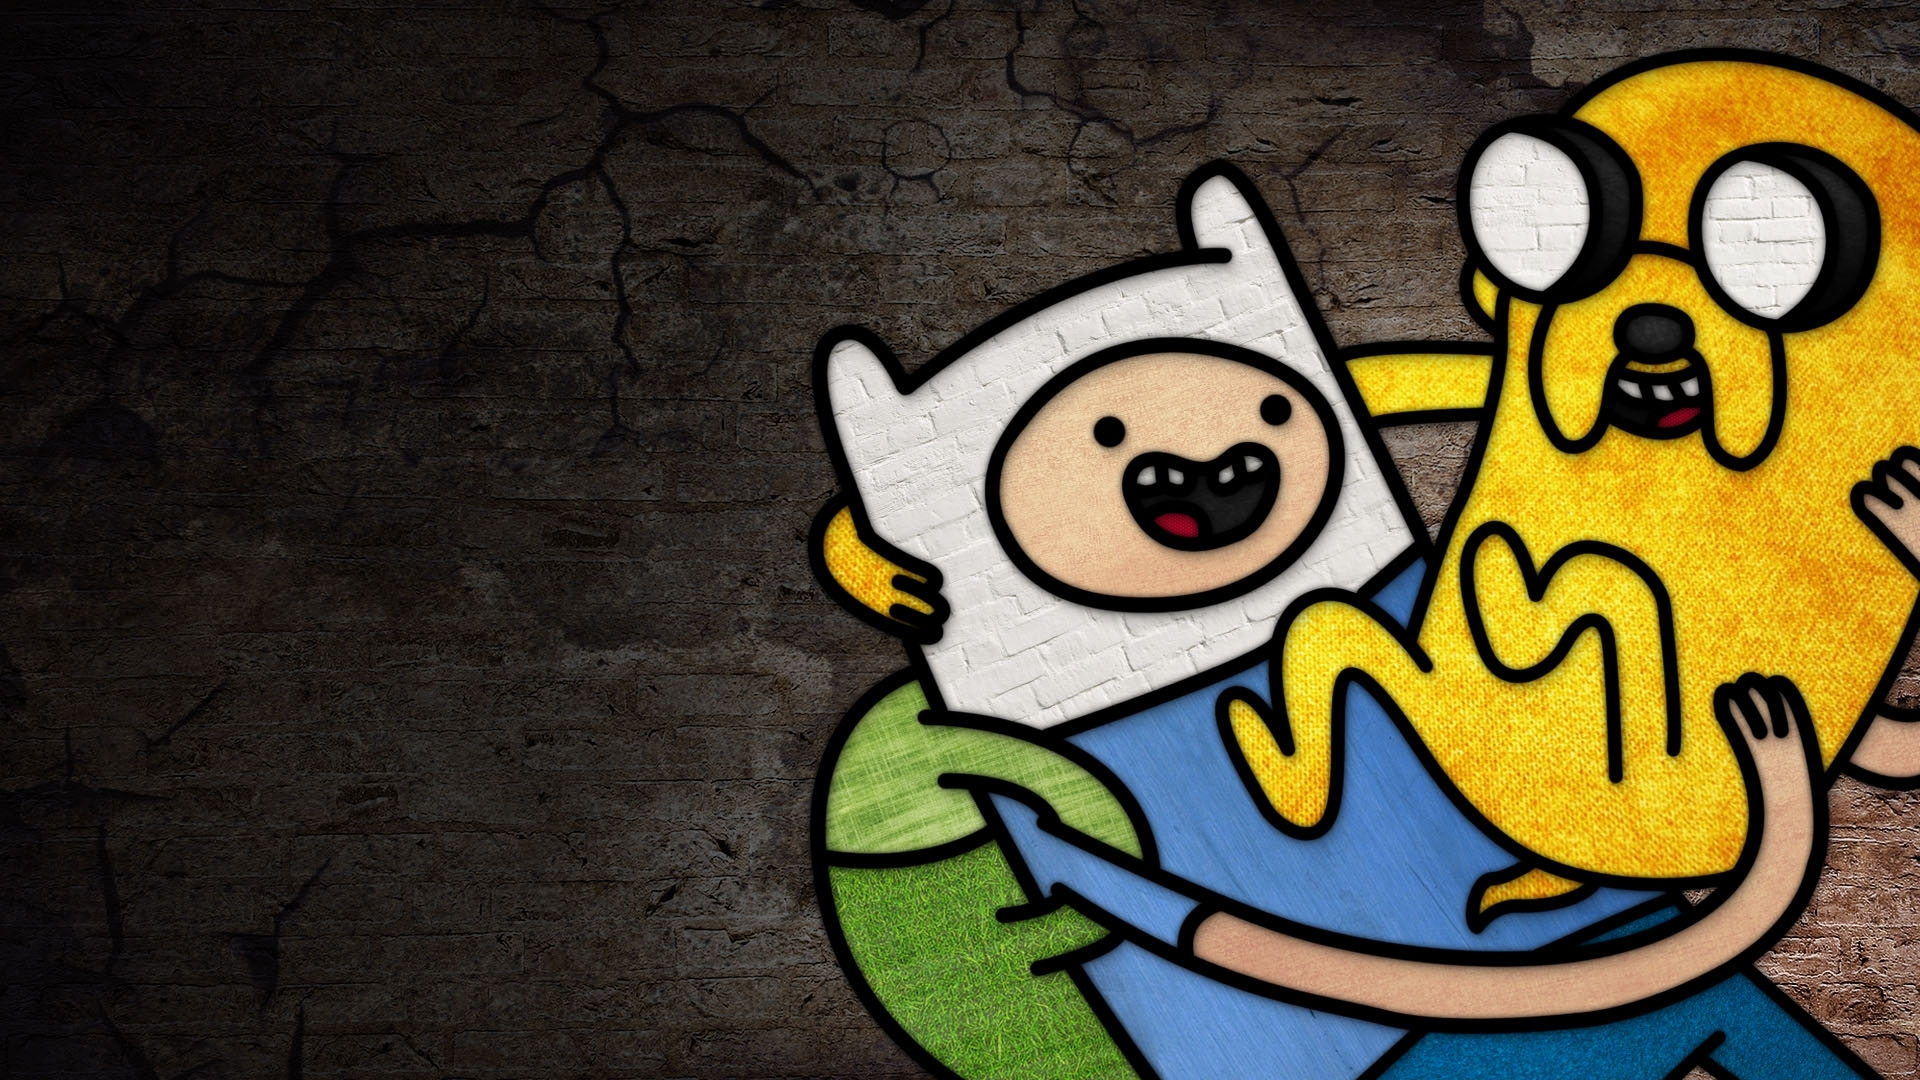 finn and jake hd wallpapers group (64+)